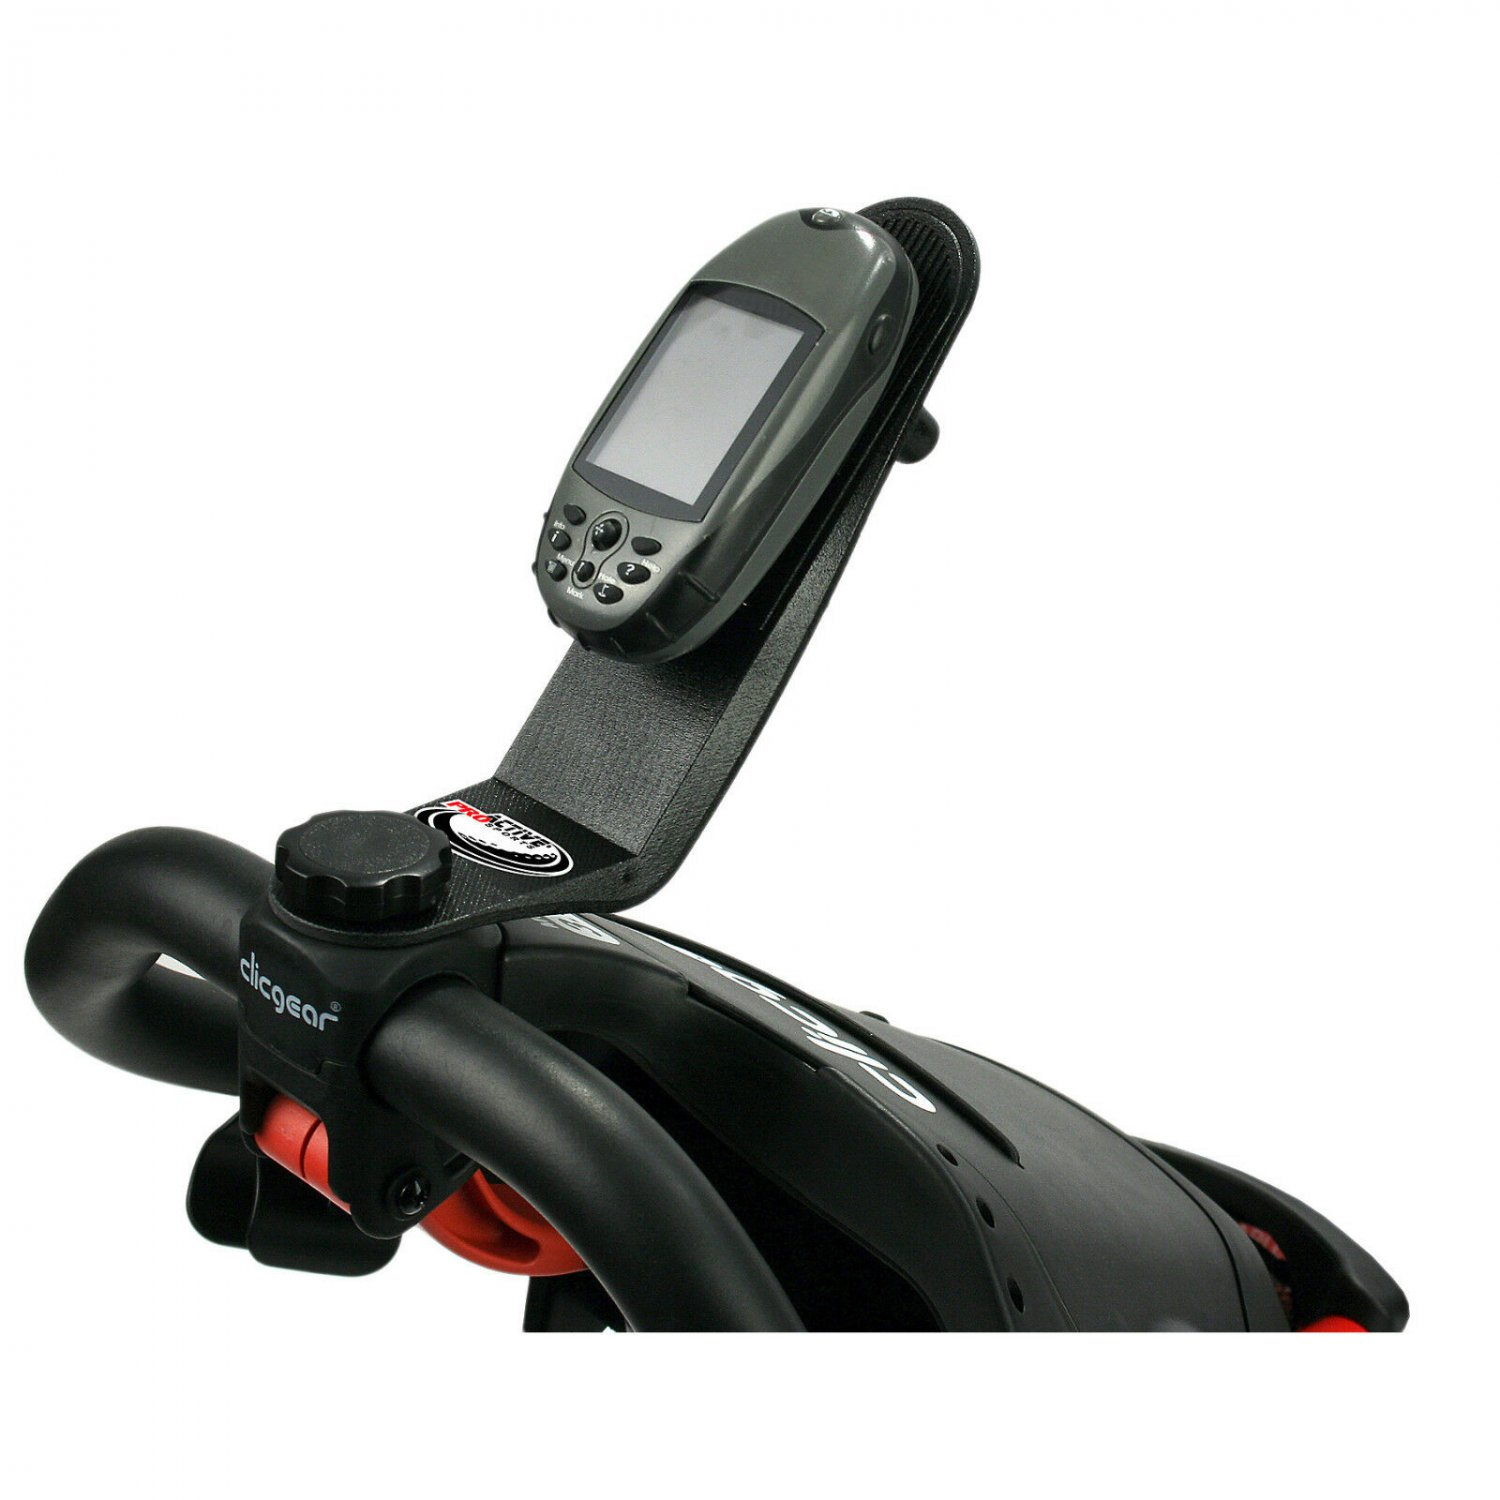 ProActive Sports View 3.0 GPS Holder